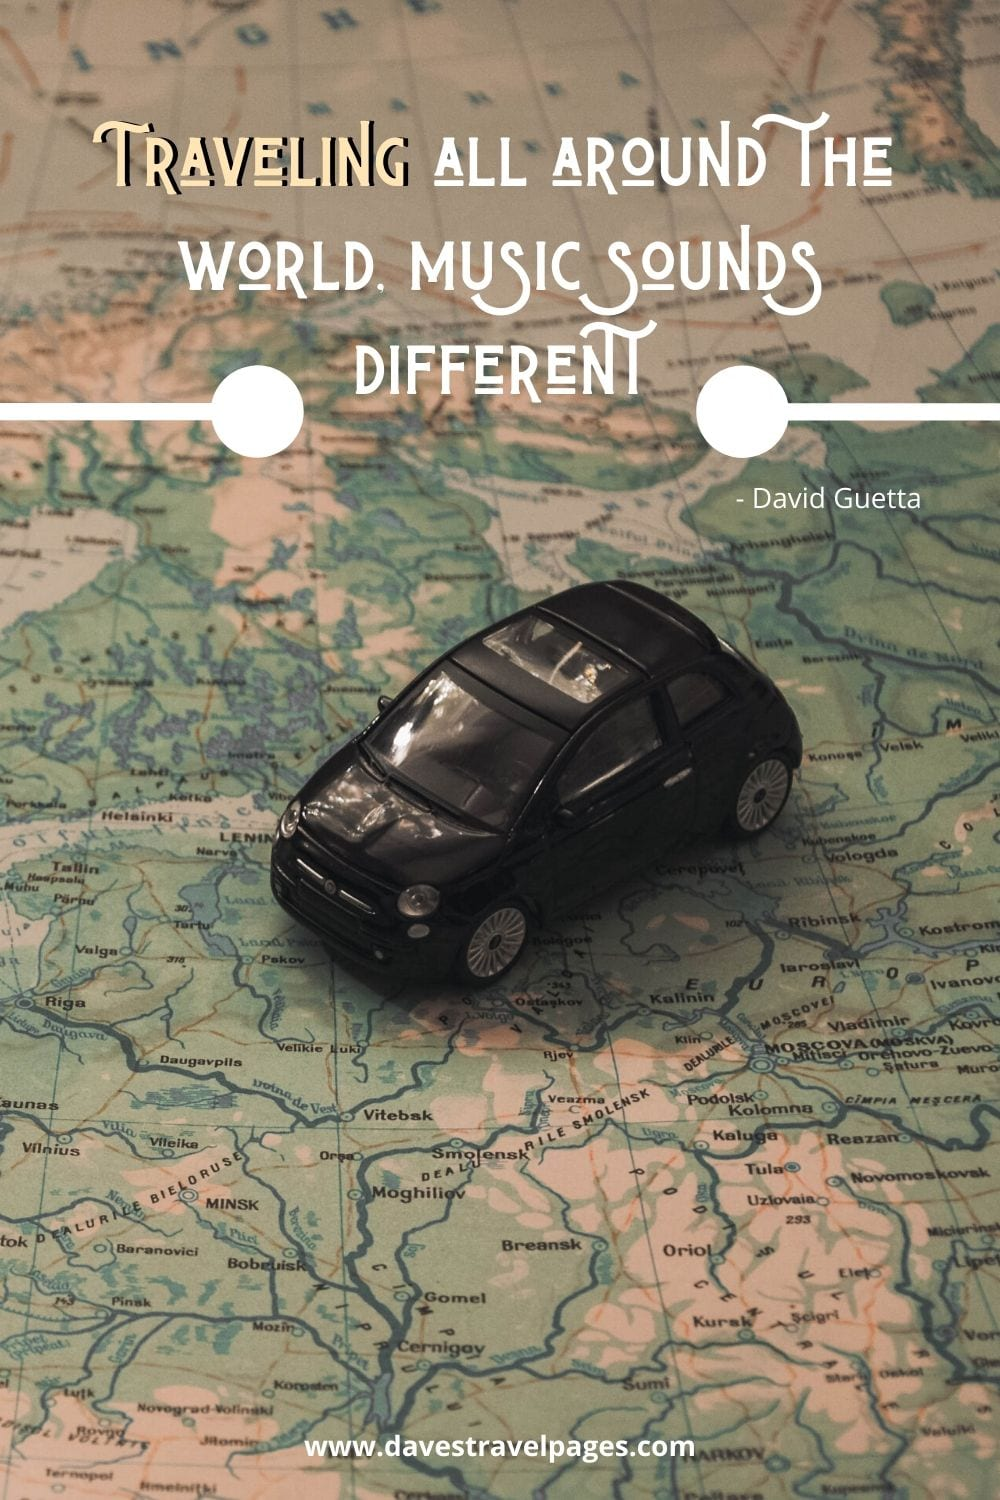 Traveling around the world quote: Traveling all around the world, music sounds different. David Guetta